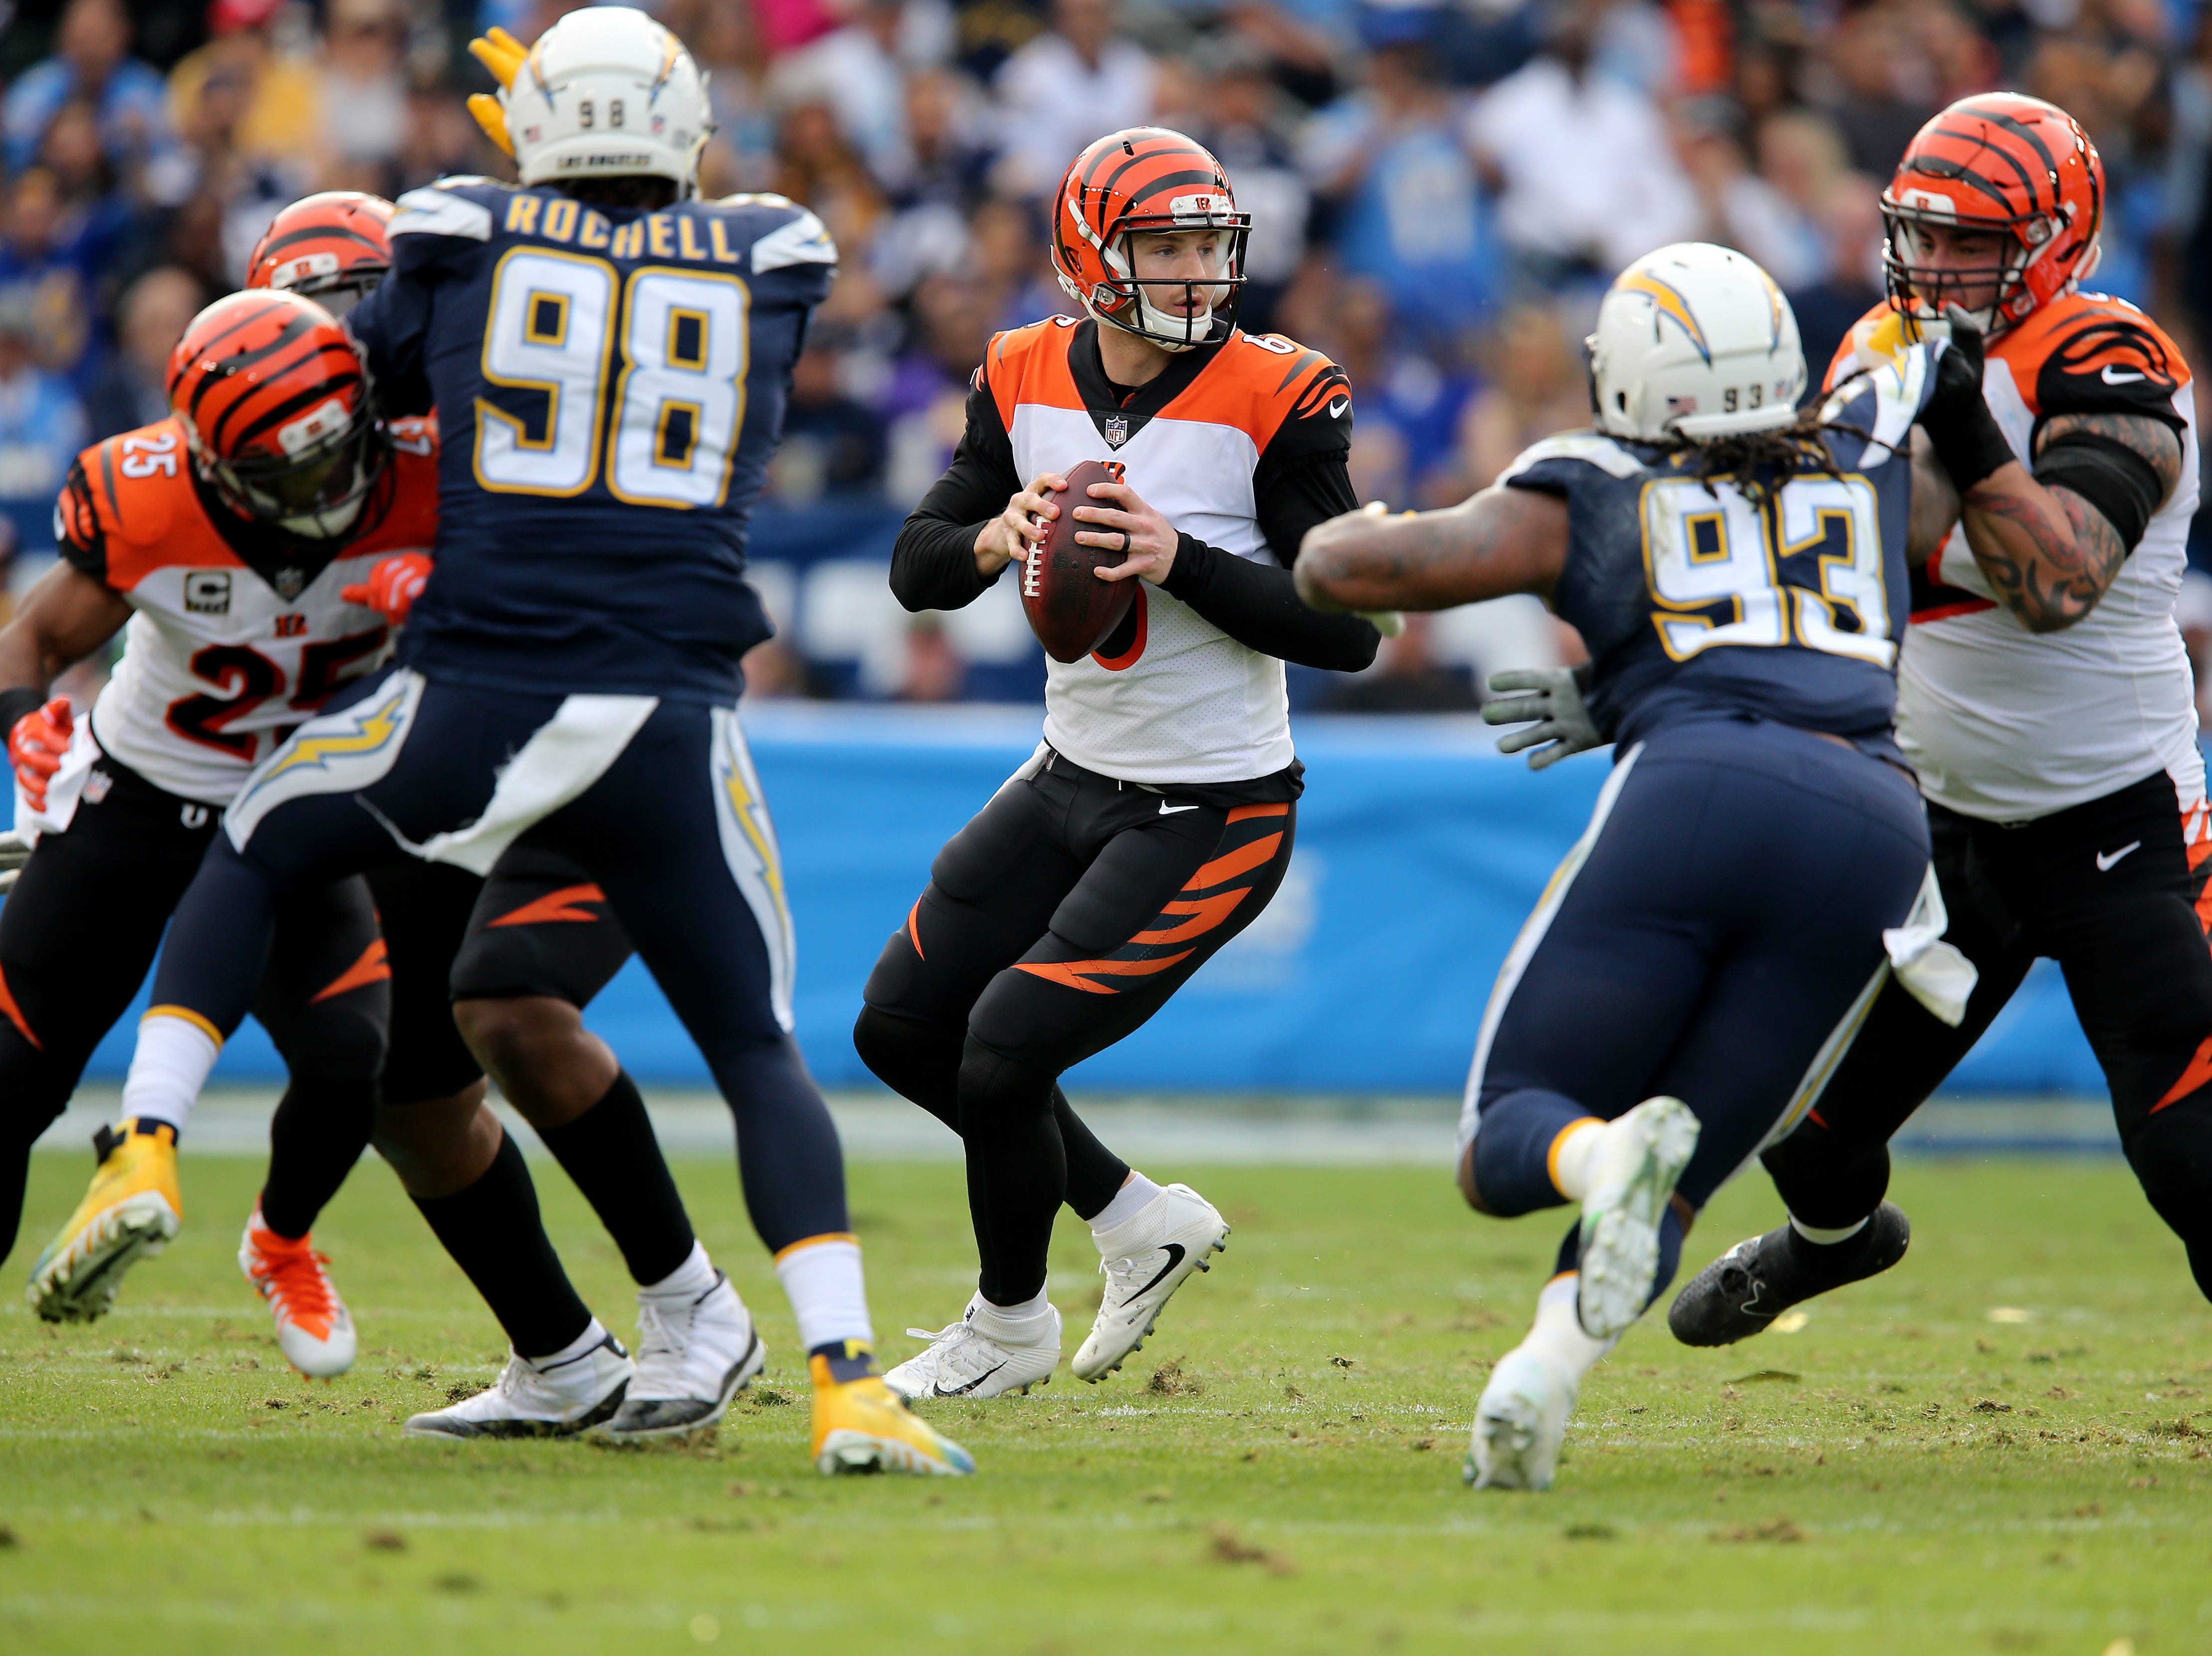 Cincinnati Bengals quarterback Jeff Driskel (6), center drops back to pass in the second quarter of a Week 14 NFL football game against the Los Angeles Chargers, Sunday, Dec. 9, 2018, at StubHub Center in Carson, California.